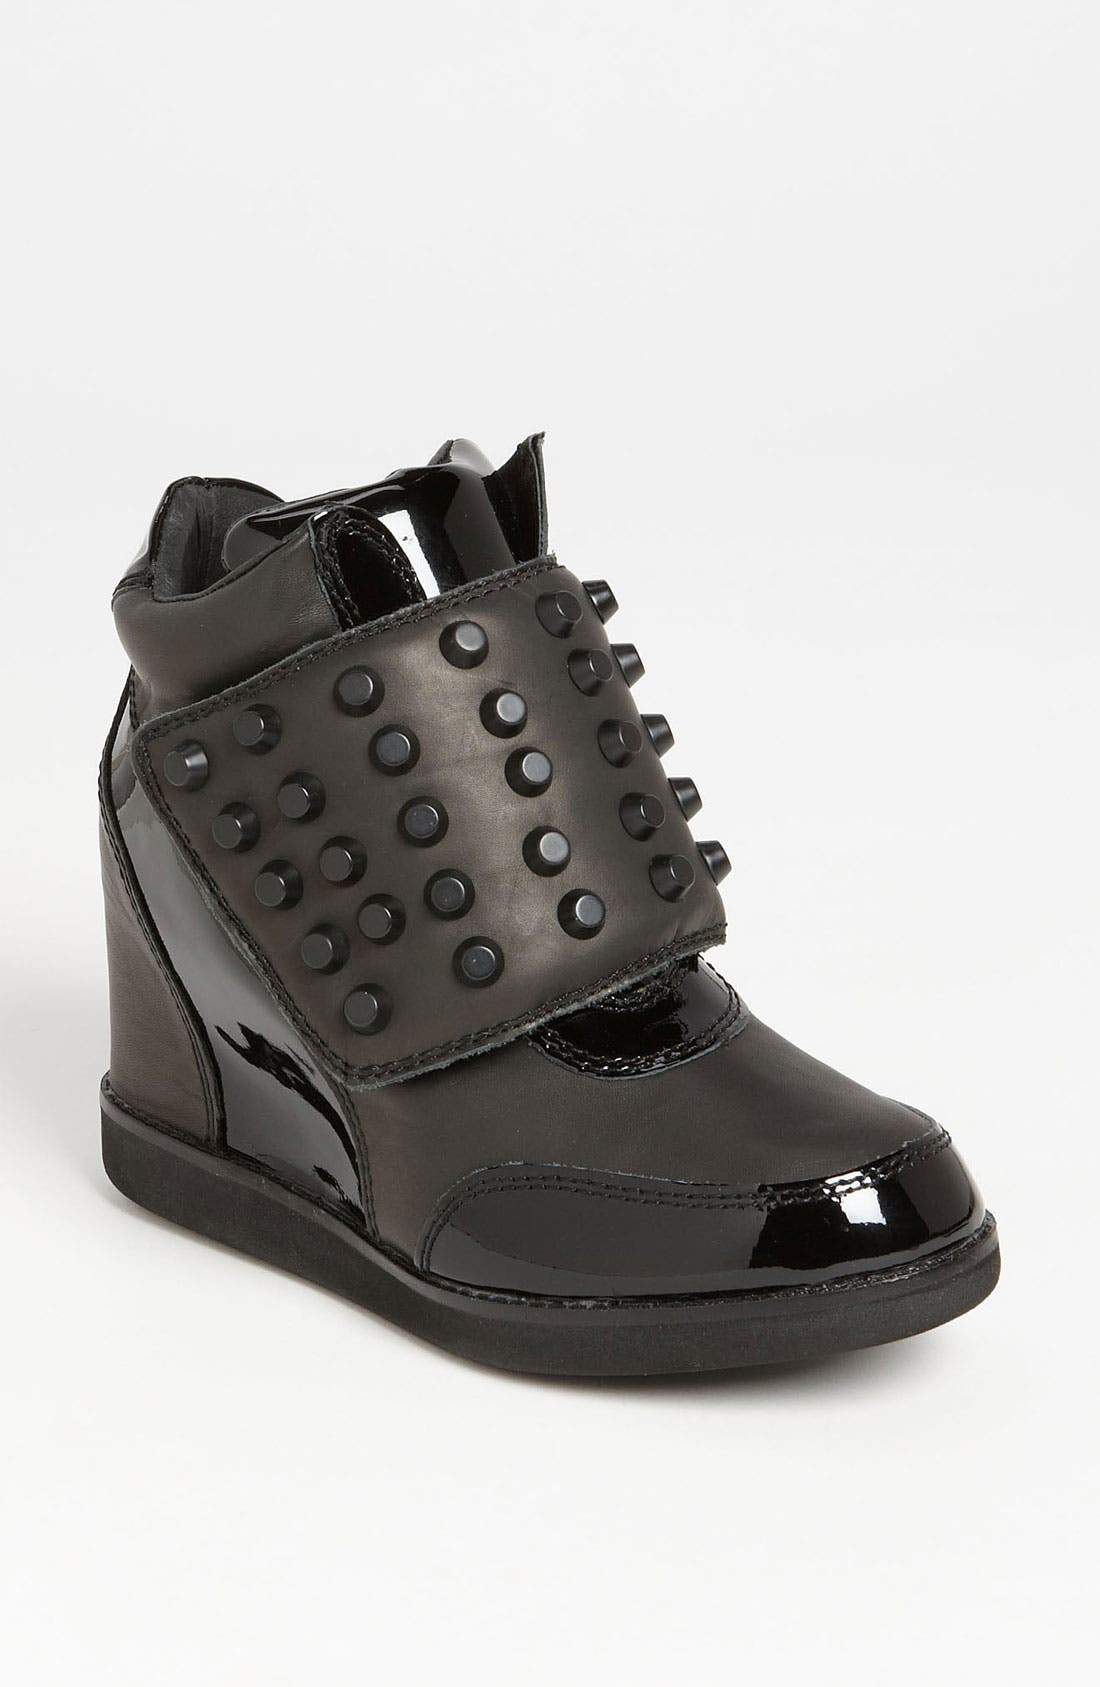 Alternate Image 1 Selected - Jeffrey Campbell 'Teramo' Sneaker